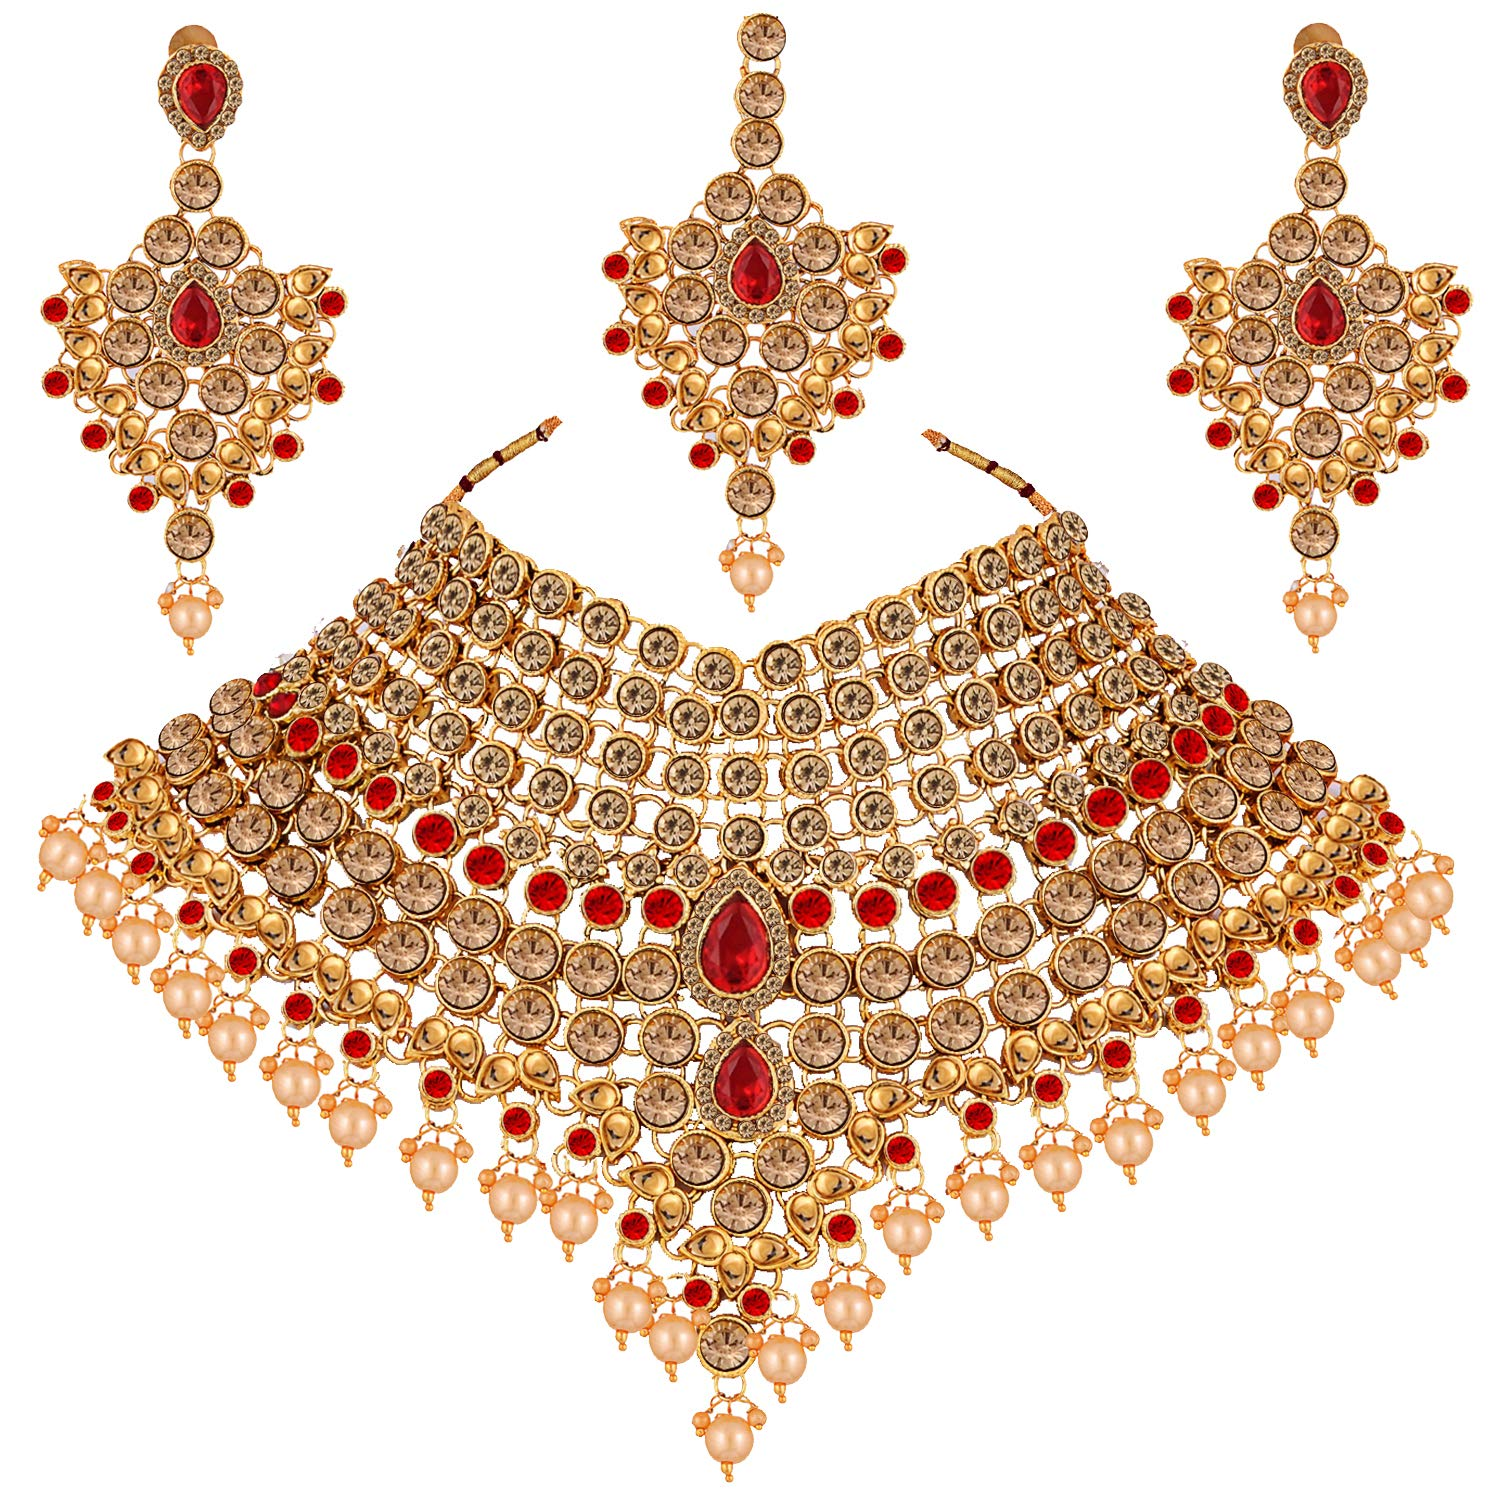 Lucky Jewellery LCT Red Bridal Dulhan Wedding & Engagement Necklace Set  with Mang Tikka Best for Bride Gold Red in Color 20 L20SS KD2024 LCT RED